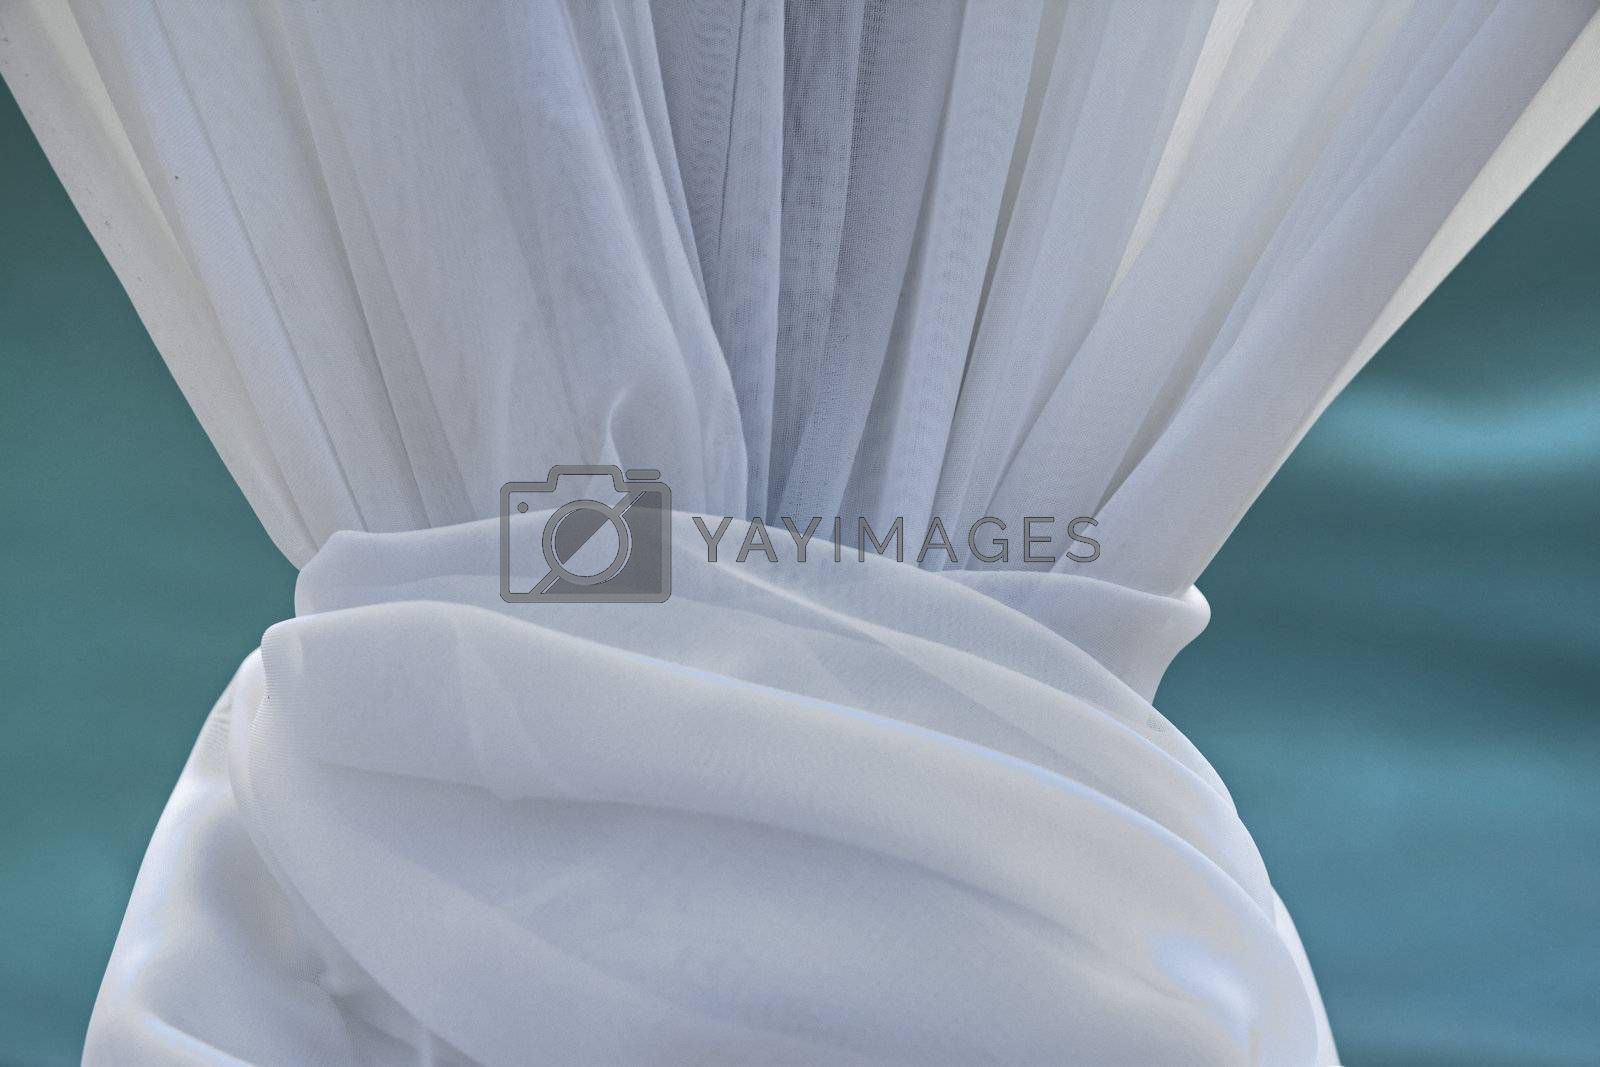 Draping decoration intended for use at a tropical wedding